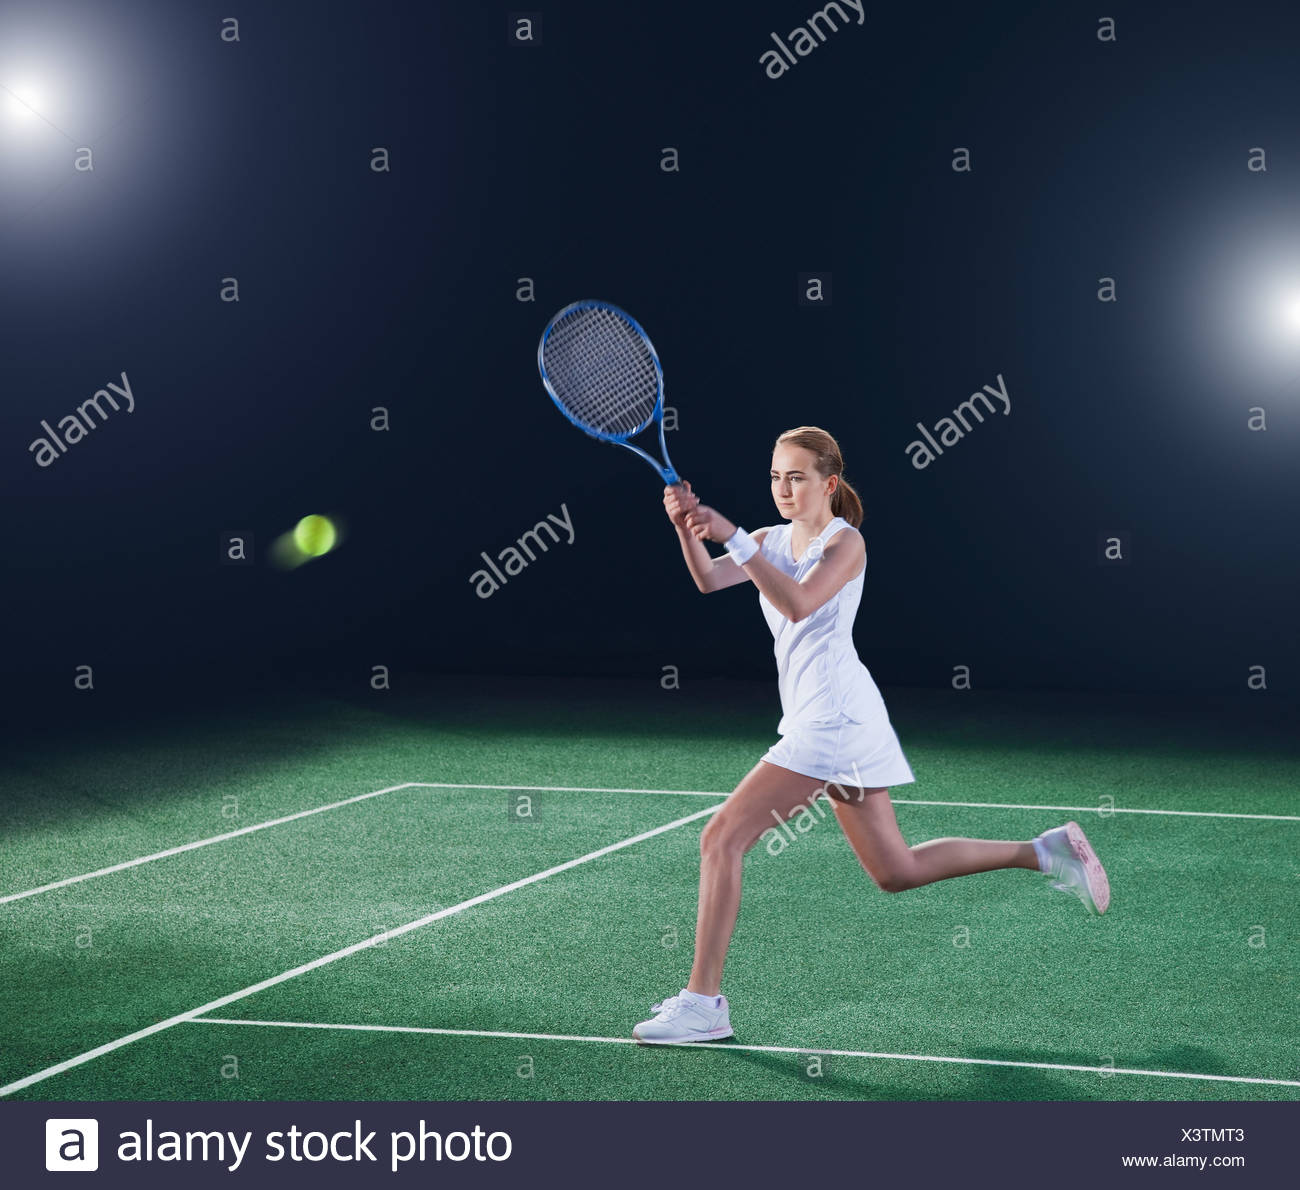 Tennis player hitting ball on court - Stock Image